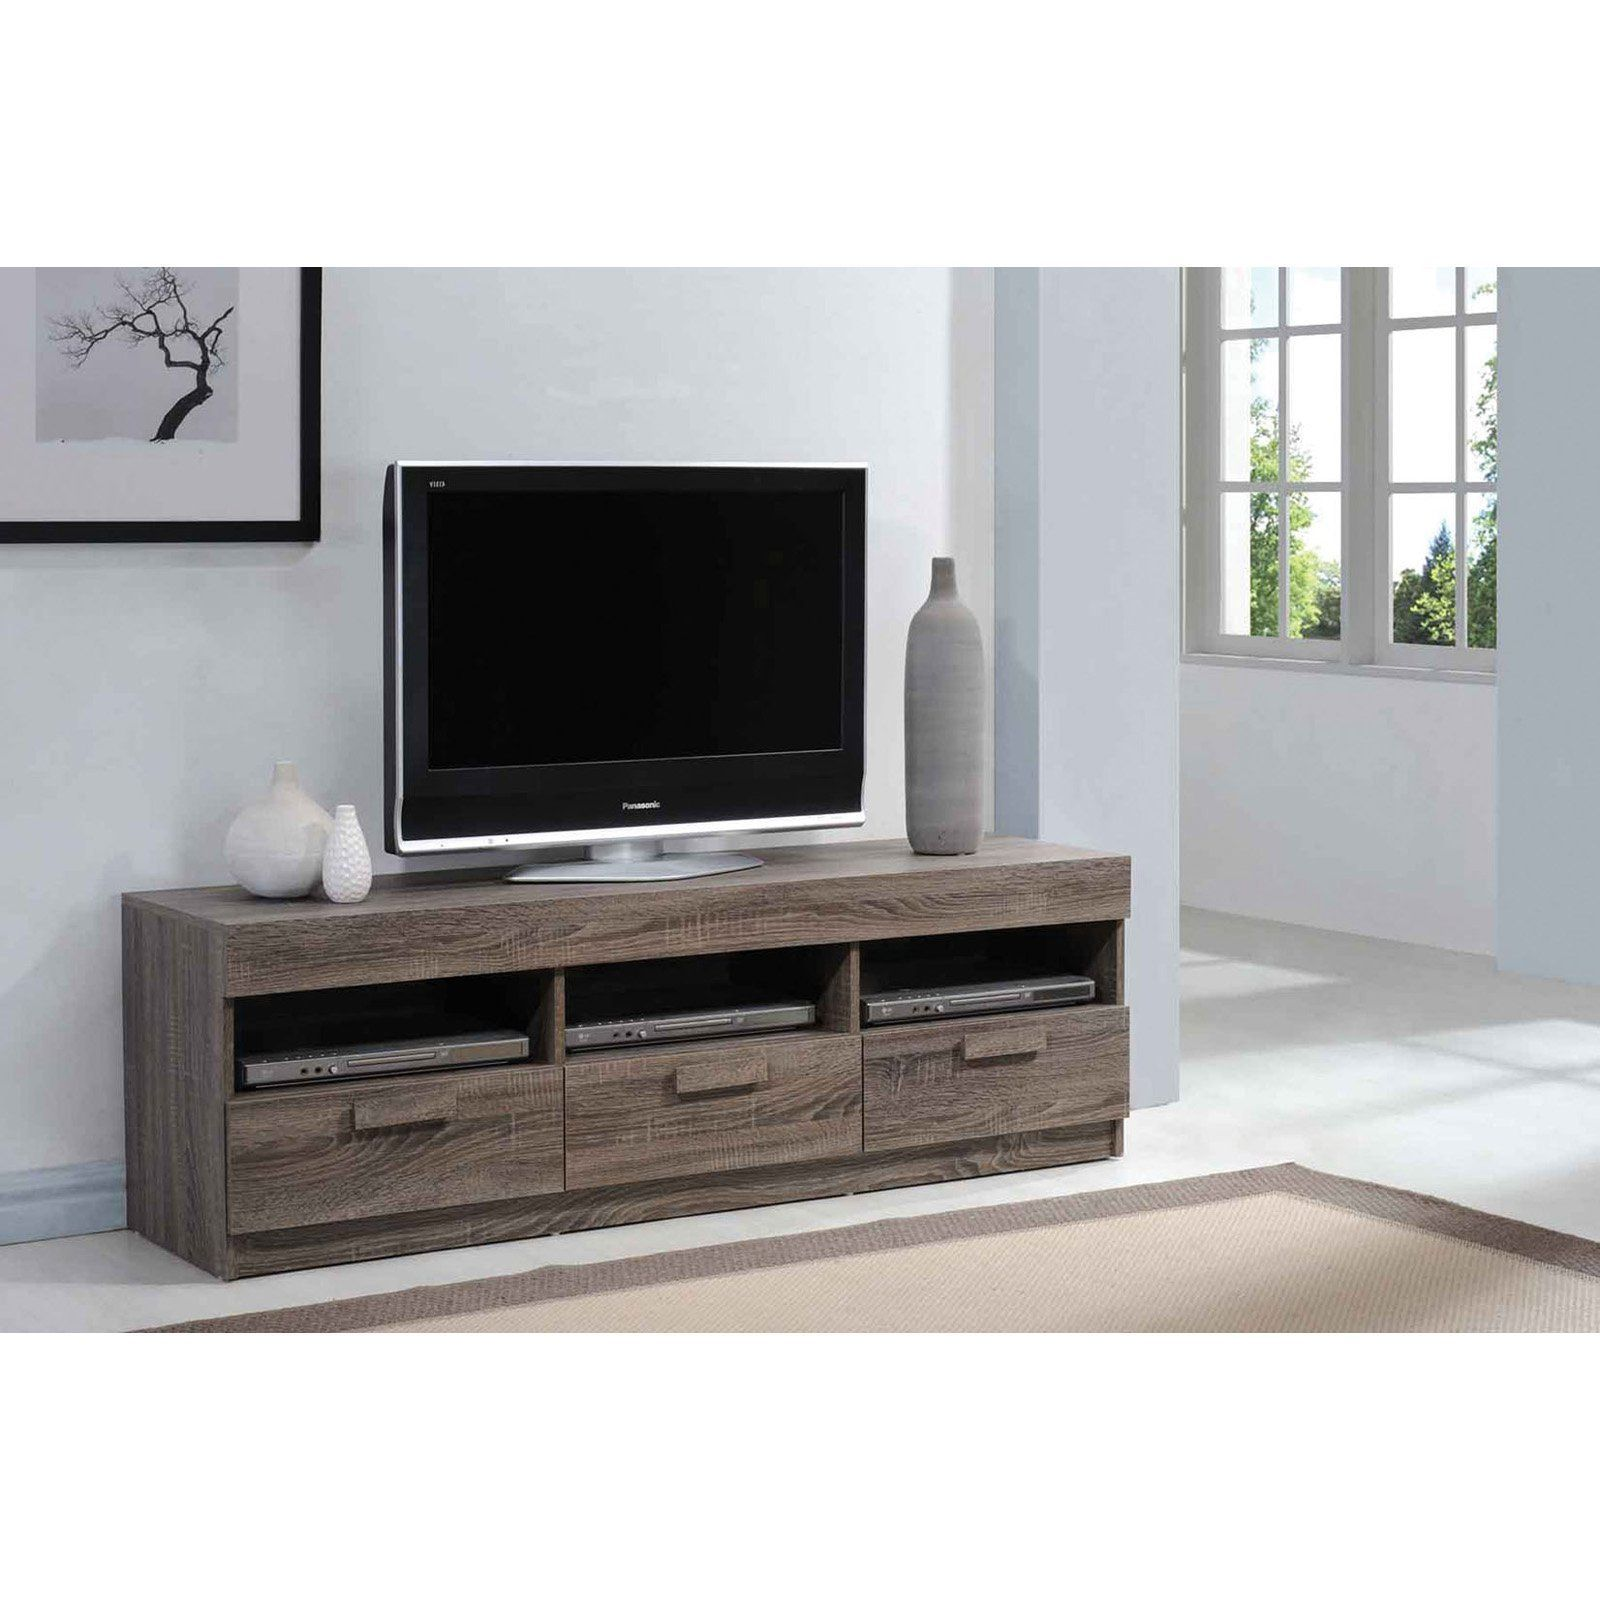 Acme alvin tv stand products pinterest tv stands and